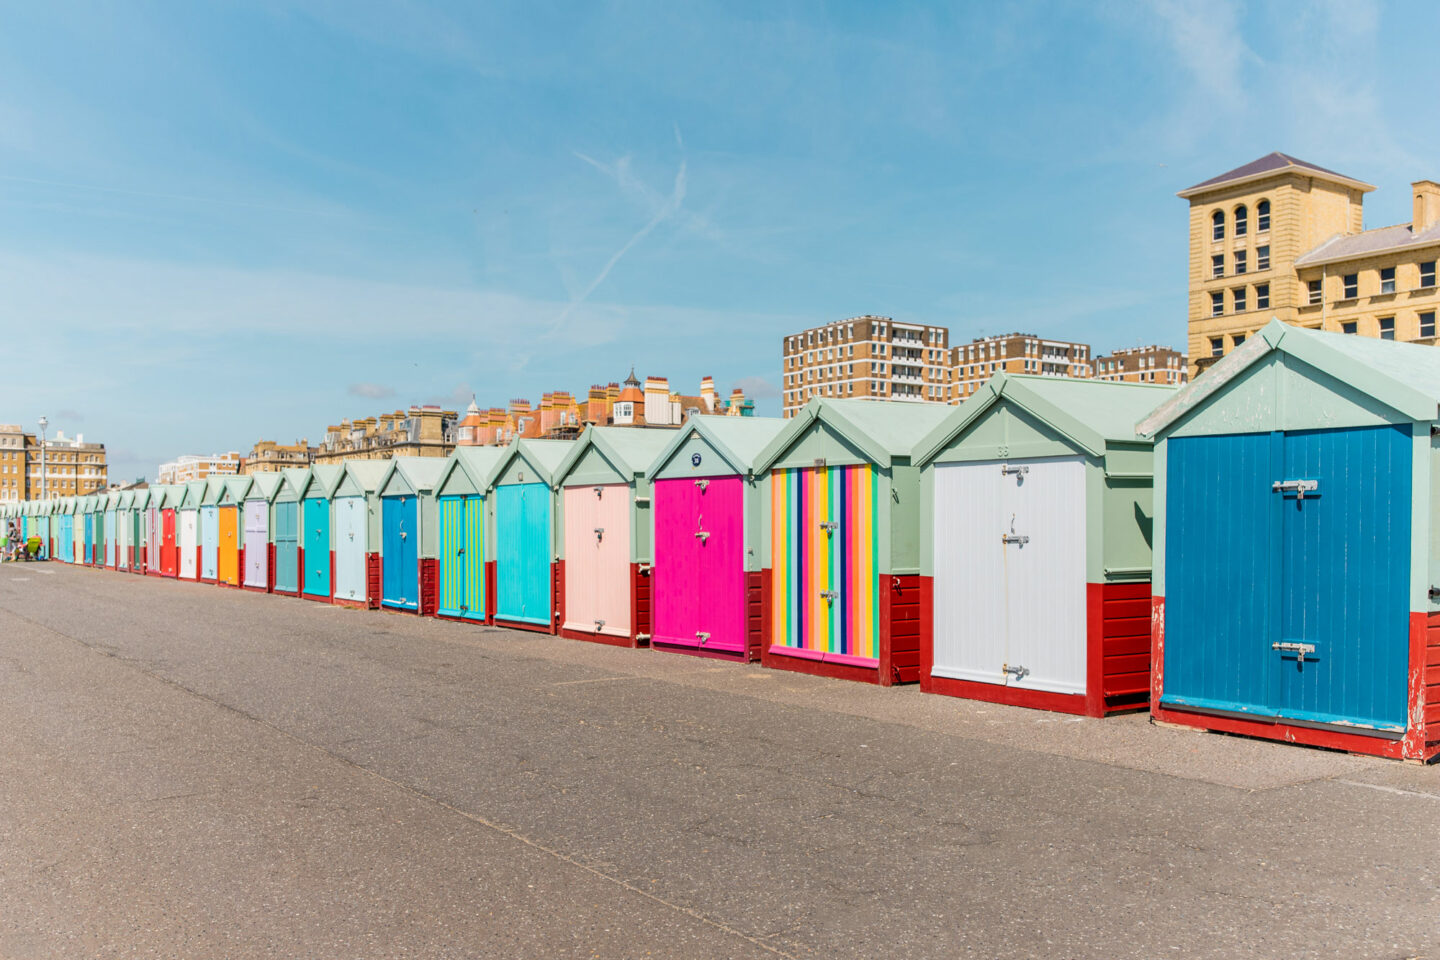 things-to-do-in-brighton-Bucket-list--Instagram-Story-Template--kelseyinlondon-Kelsey-Heinrichs-the-brighton-beach-huts.jpg